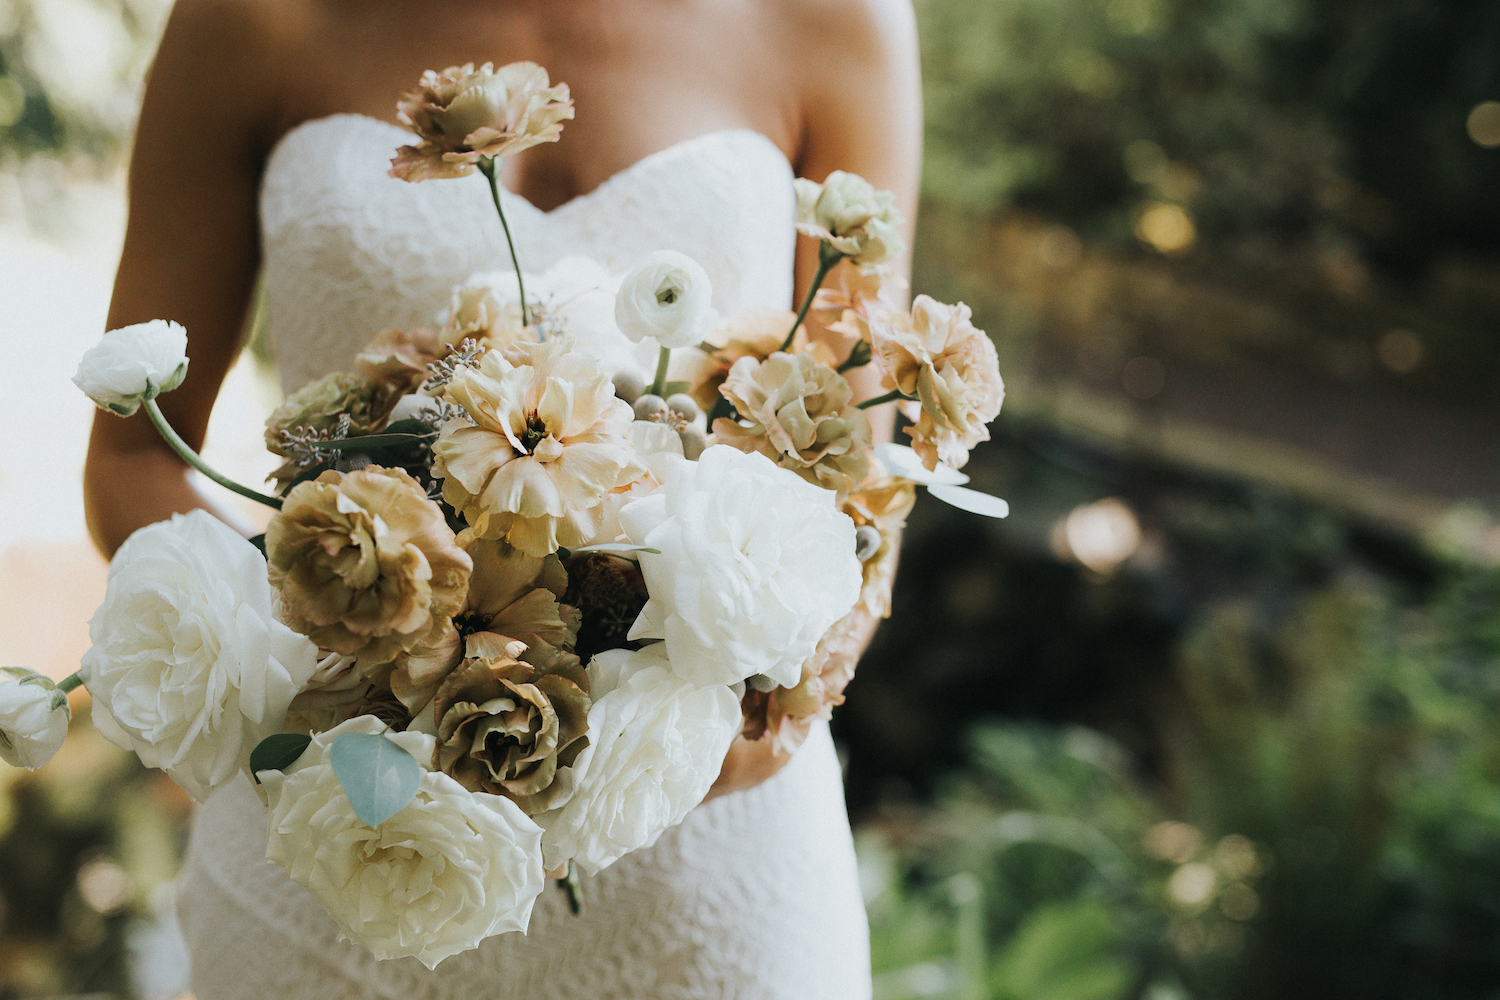 Wild Bloom Floral - Rachel Birkhofer Photography - Jessica and Phil - Real Wedding - Seattle 24.jpeg